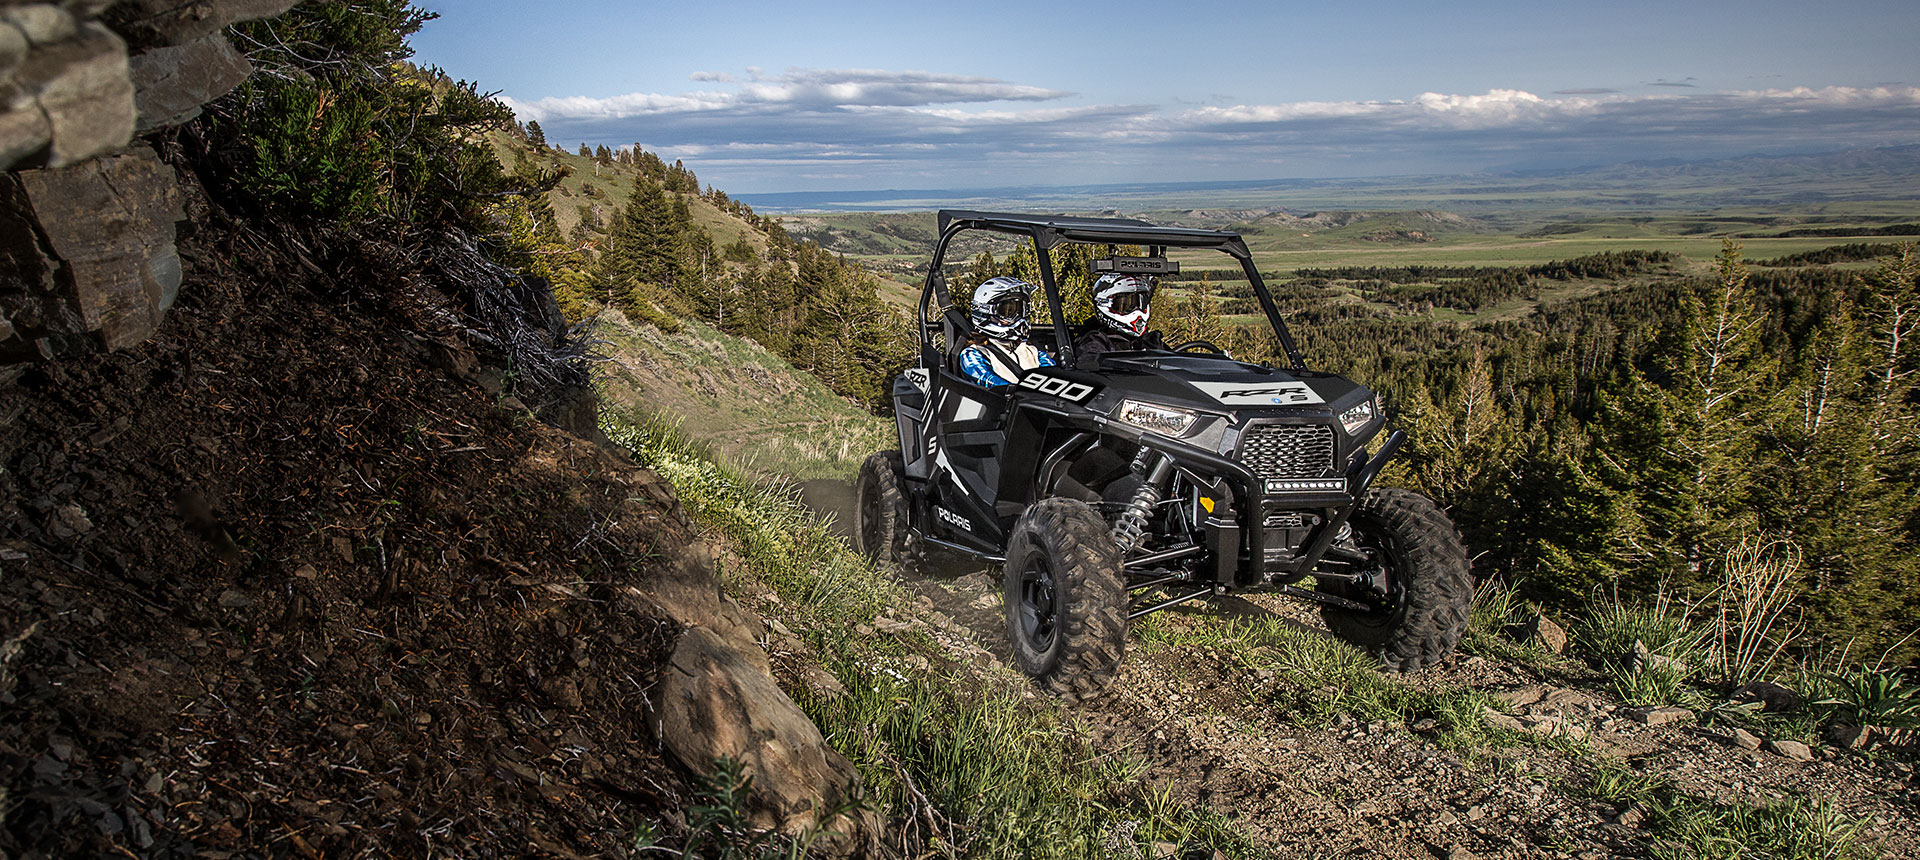 2019 Polaris RZR S 900 in Amory, Mississippi - Photo 4